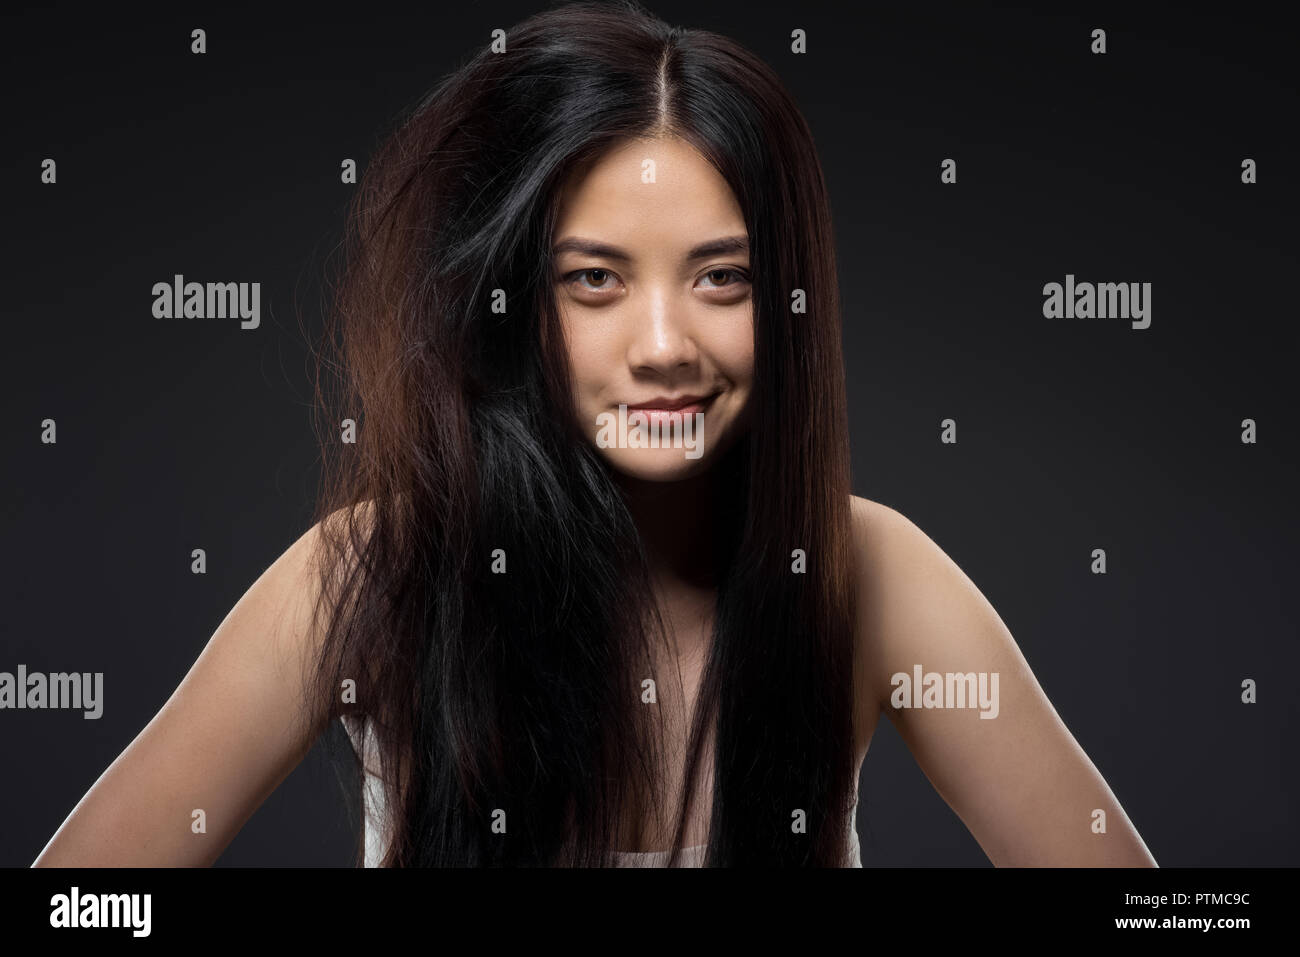 portrait of smiling asian woman with half knotted and straight hair isolated on black, keratin hair treatment concept - Stock Image